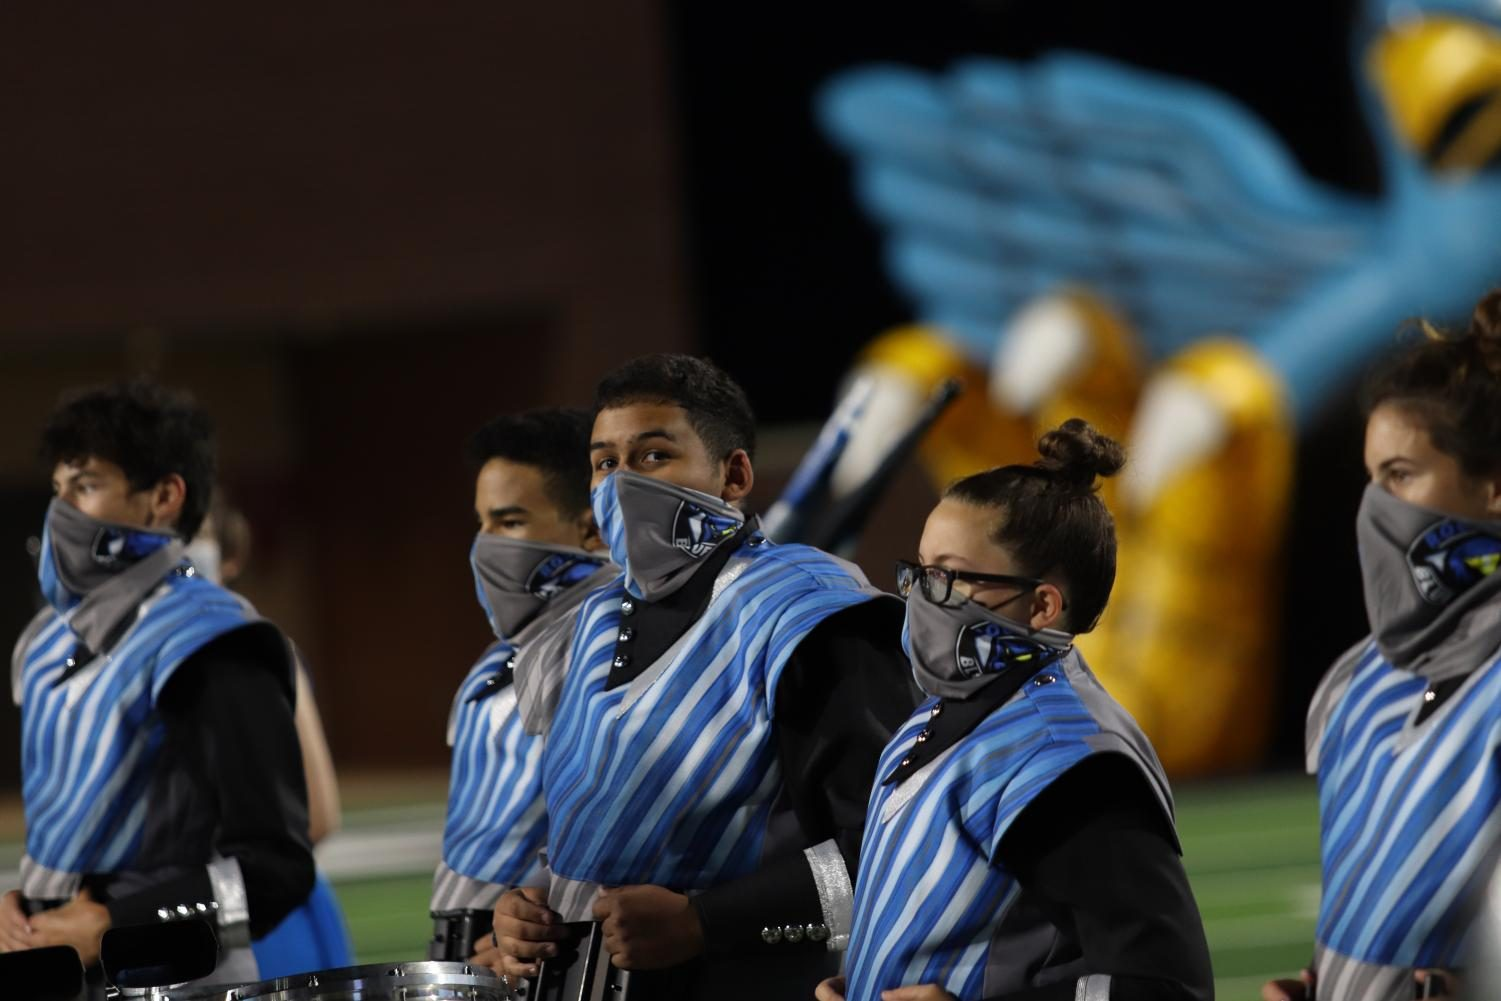 Juan Vera-Gonzalez waits to perform with the rest of the drum line Friday, Oct. 3. Even though the football game was canceled, band, color guard and the Rockettes still performed their half-time performance at Children